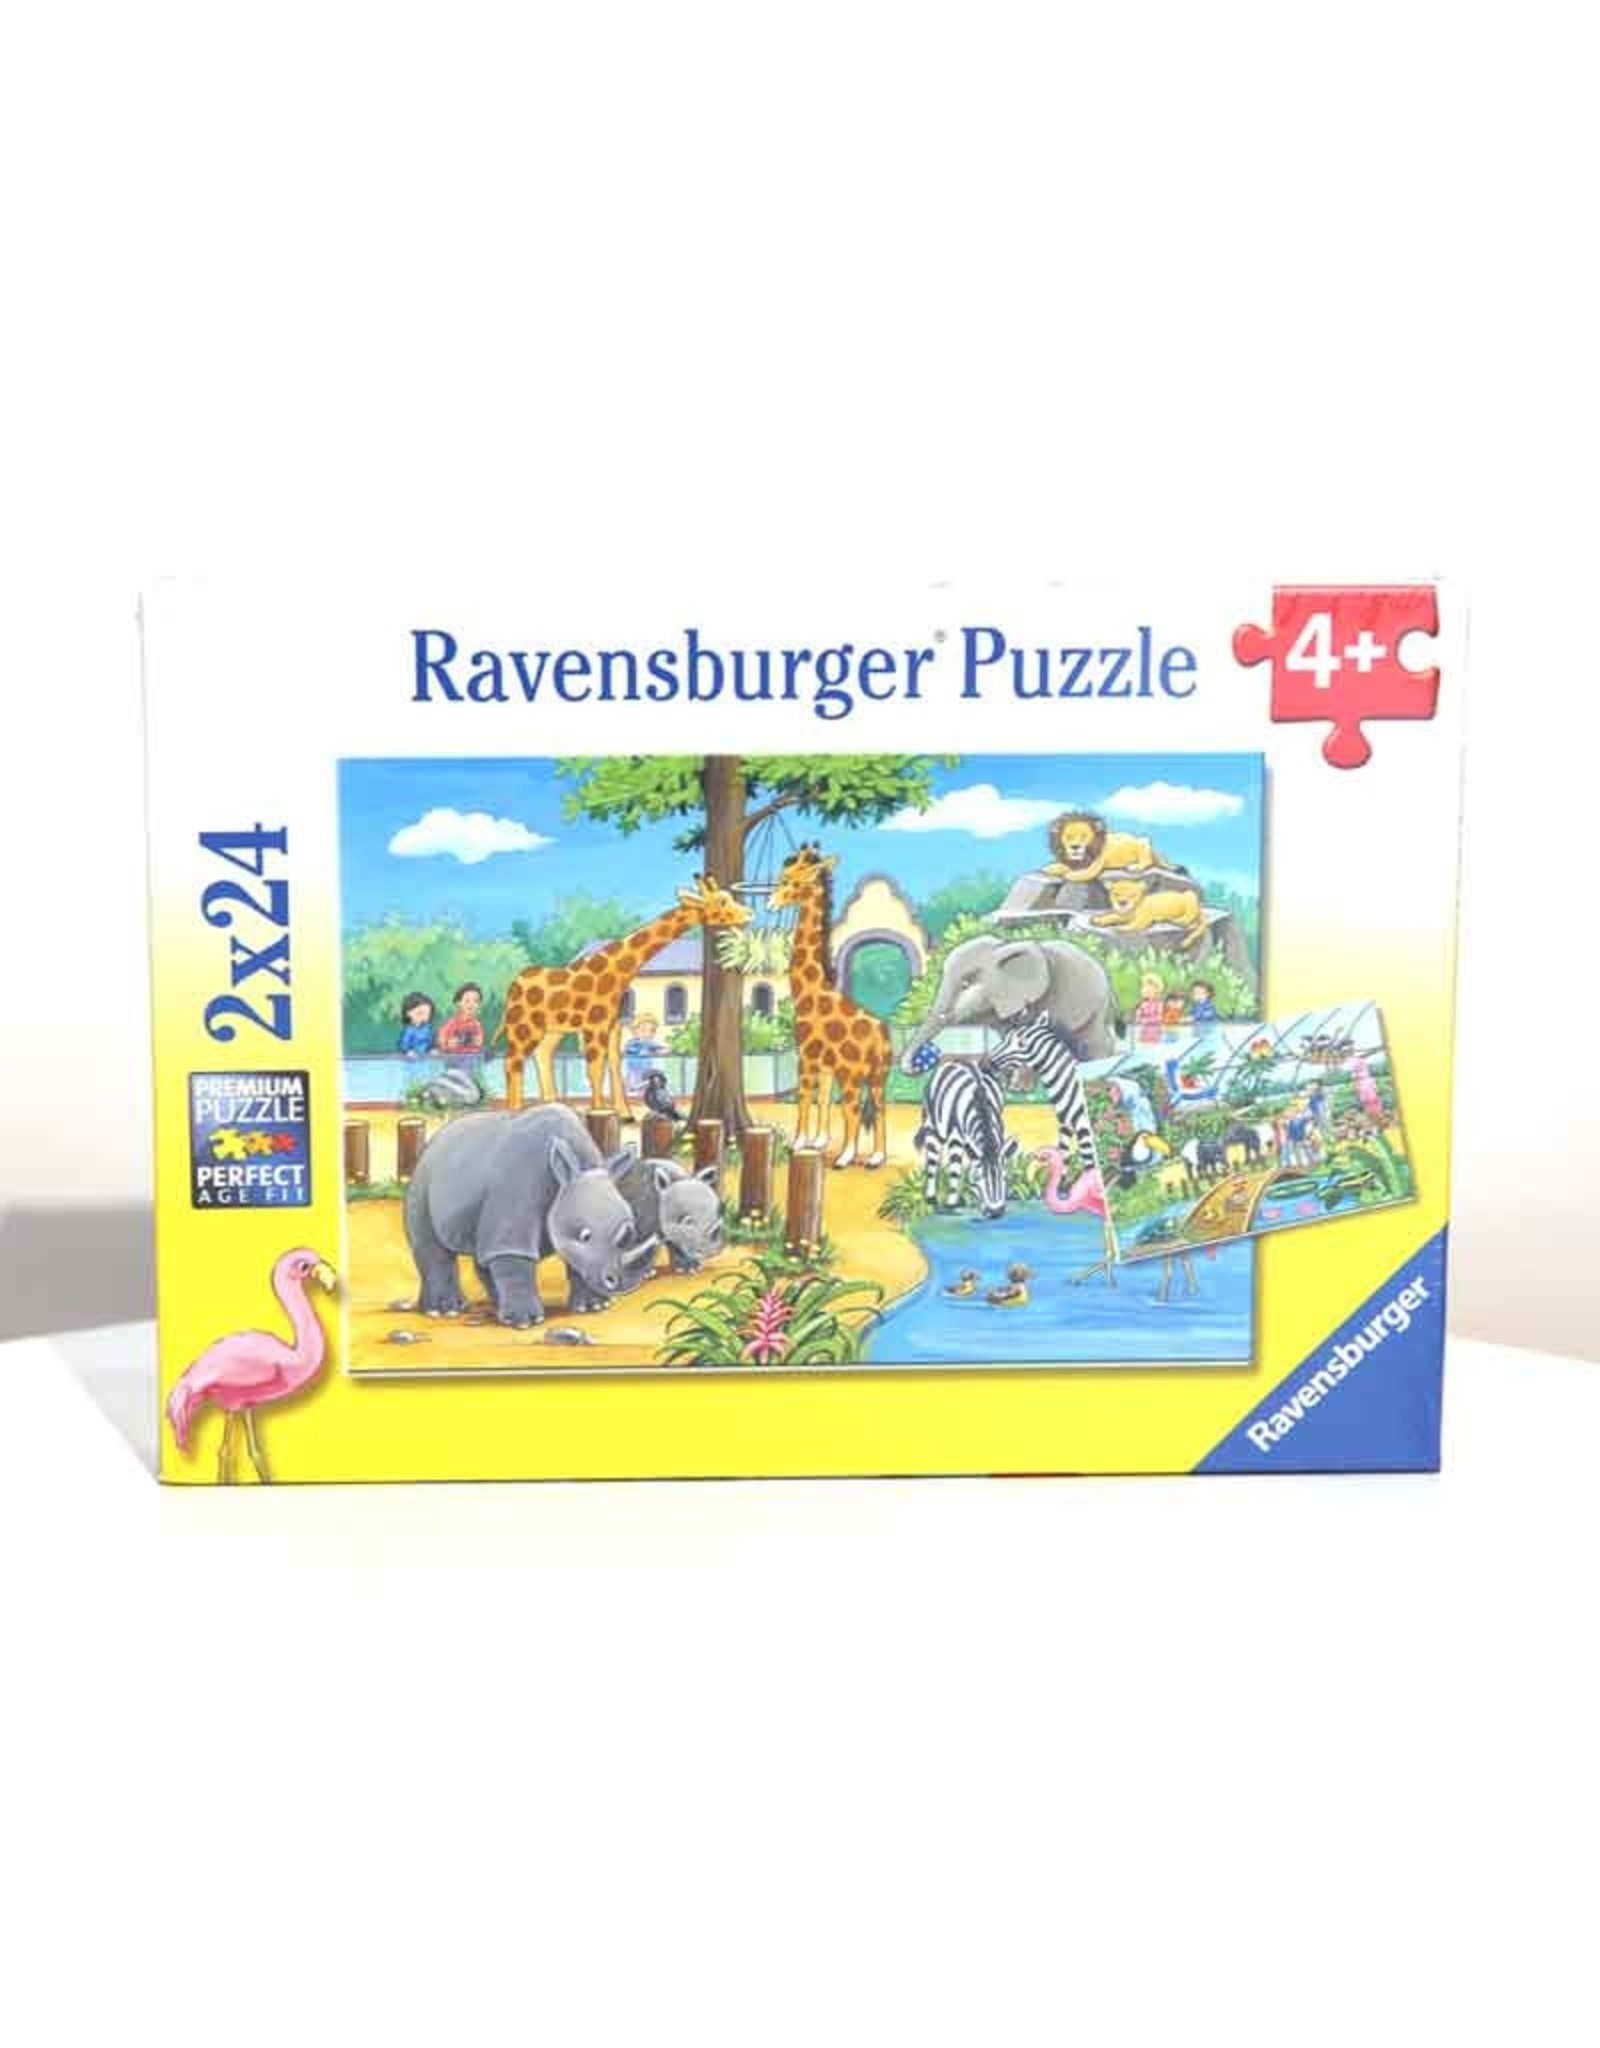 Ravensburger Welcome to the Zoo Puzzle